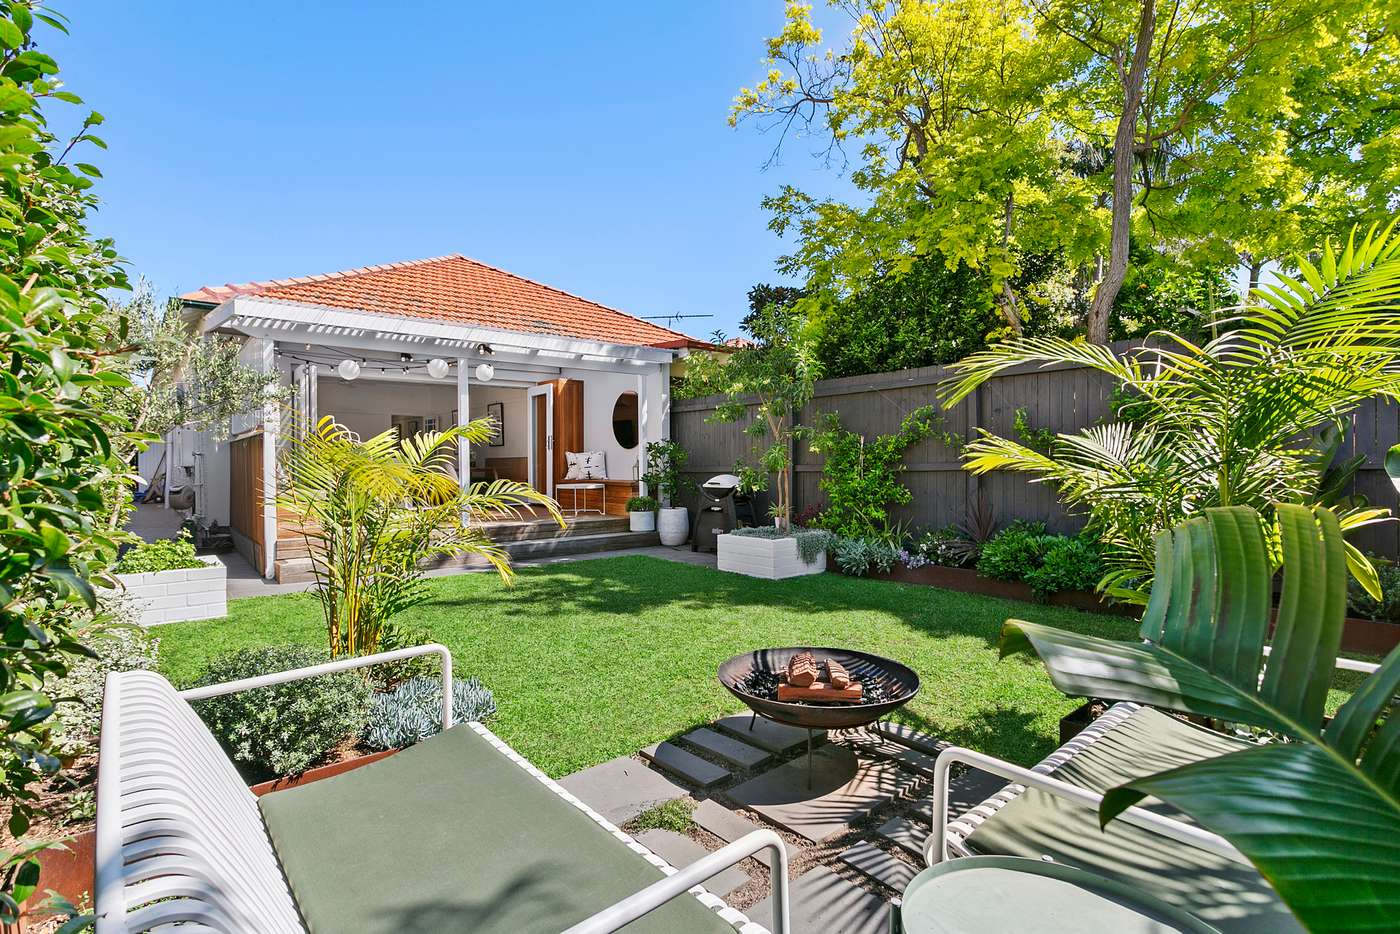 Main view of Homely house listing, 100 Gale Road, Maroubra NSW 2035